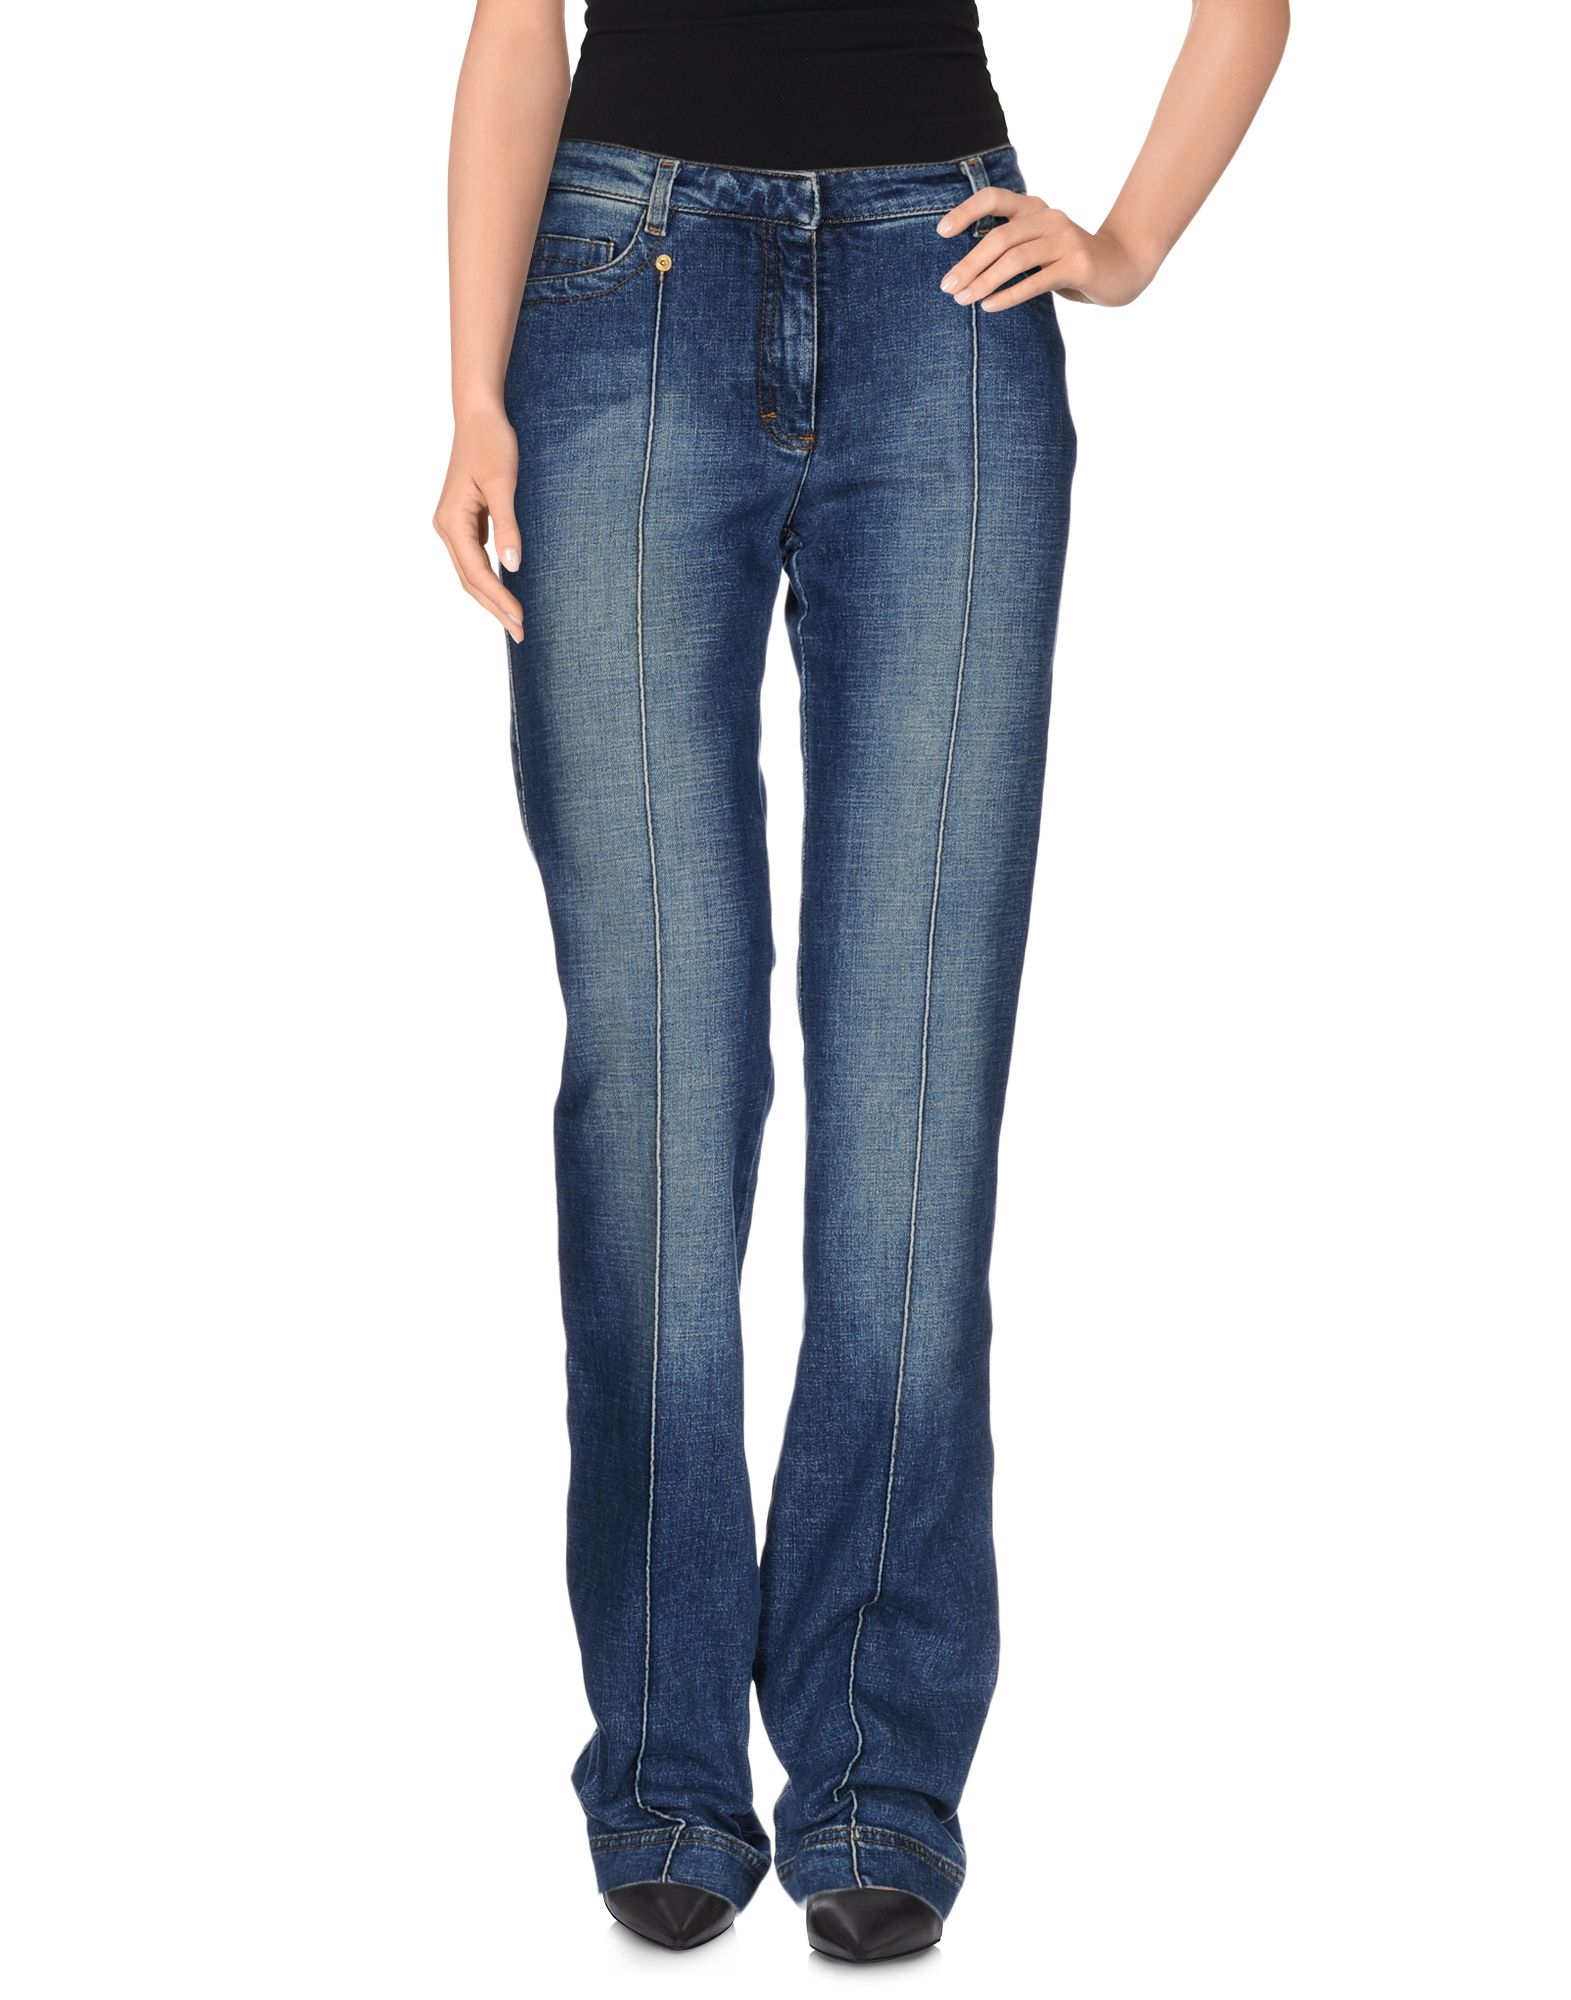 Find Roberto Cavalli women's jeans at ShopStyle. Shop the latest collection of Roberto Cavalli women's jeans from the most popular stores - all in one.